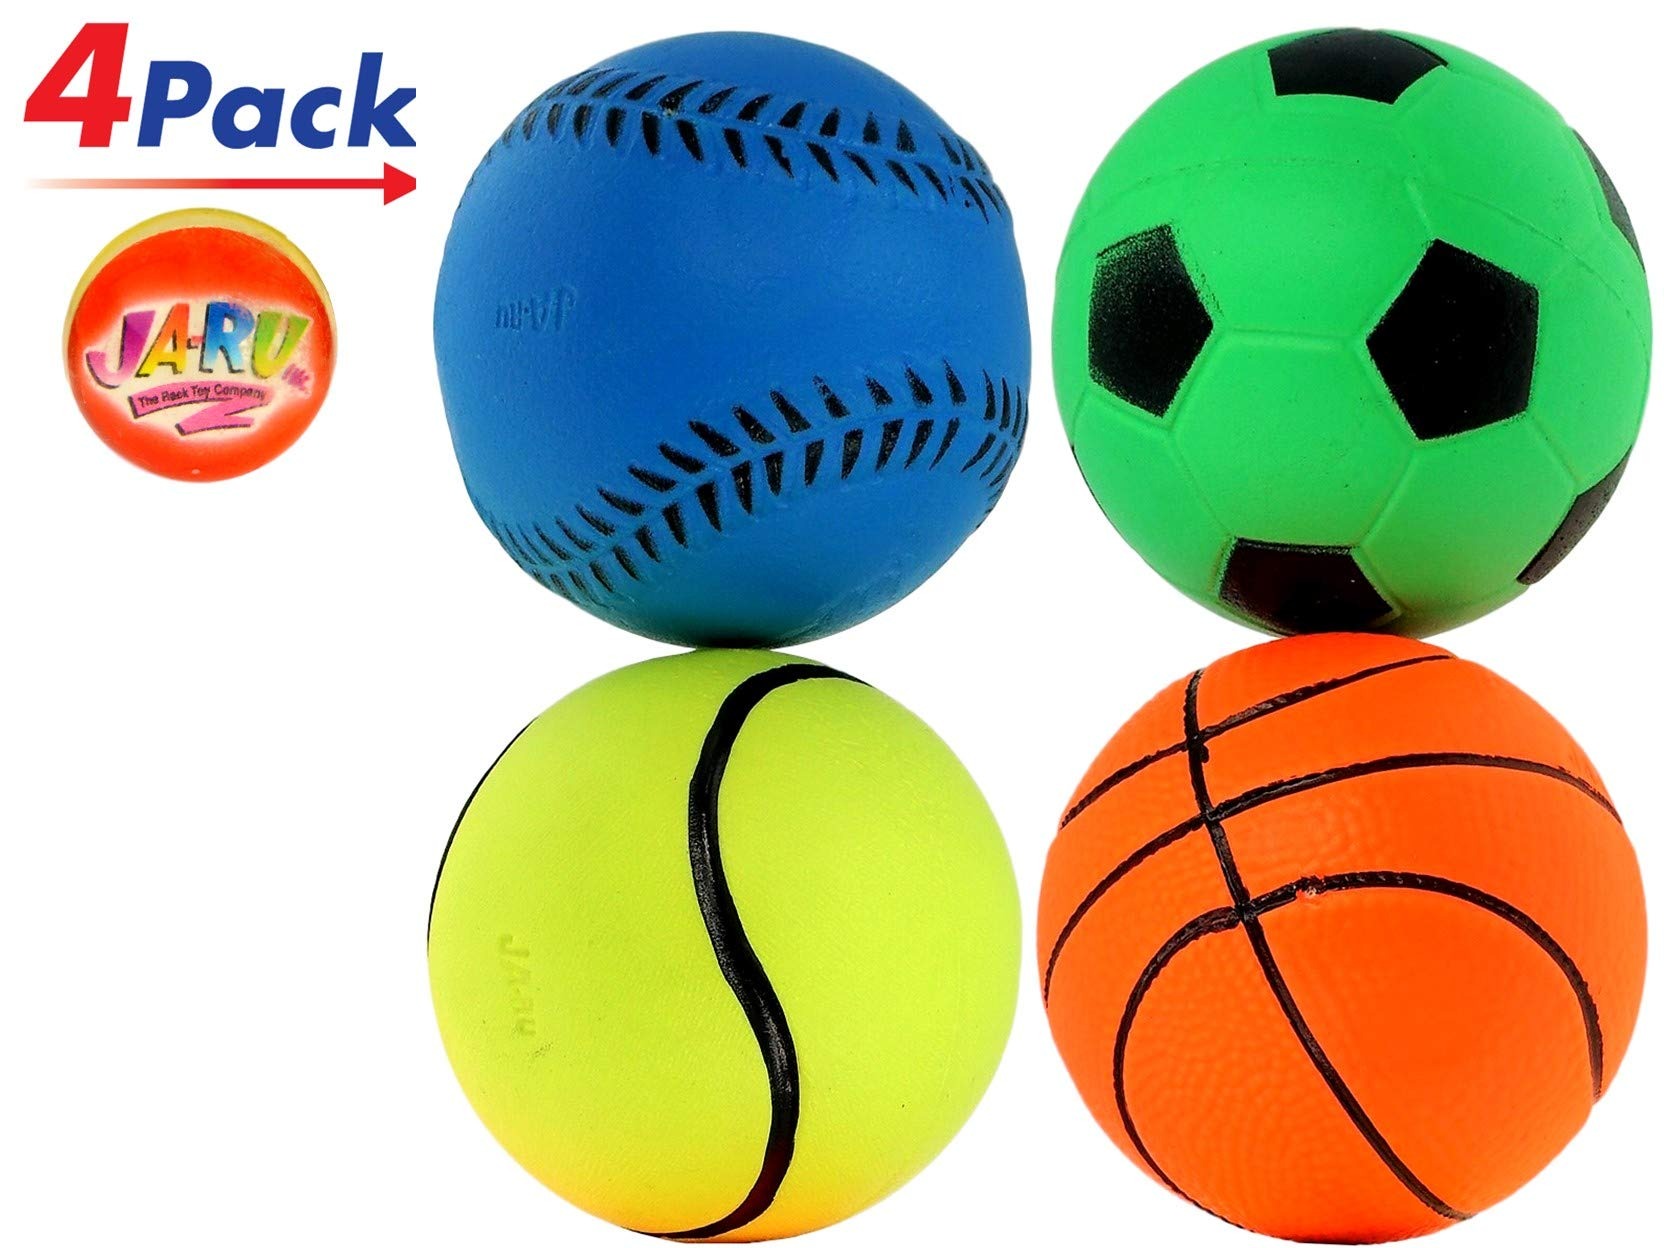 Rubber Bouncy Ball Sports Style (Pack of 4) 2.5'' Hi Bounce Same Like Pinky Balls for Play or Massage Therapy. Plus 1 Small JA-RU Ball. # 986-4p by JaRu